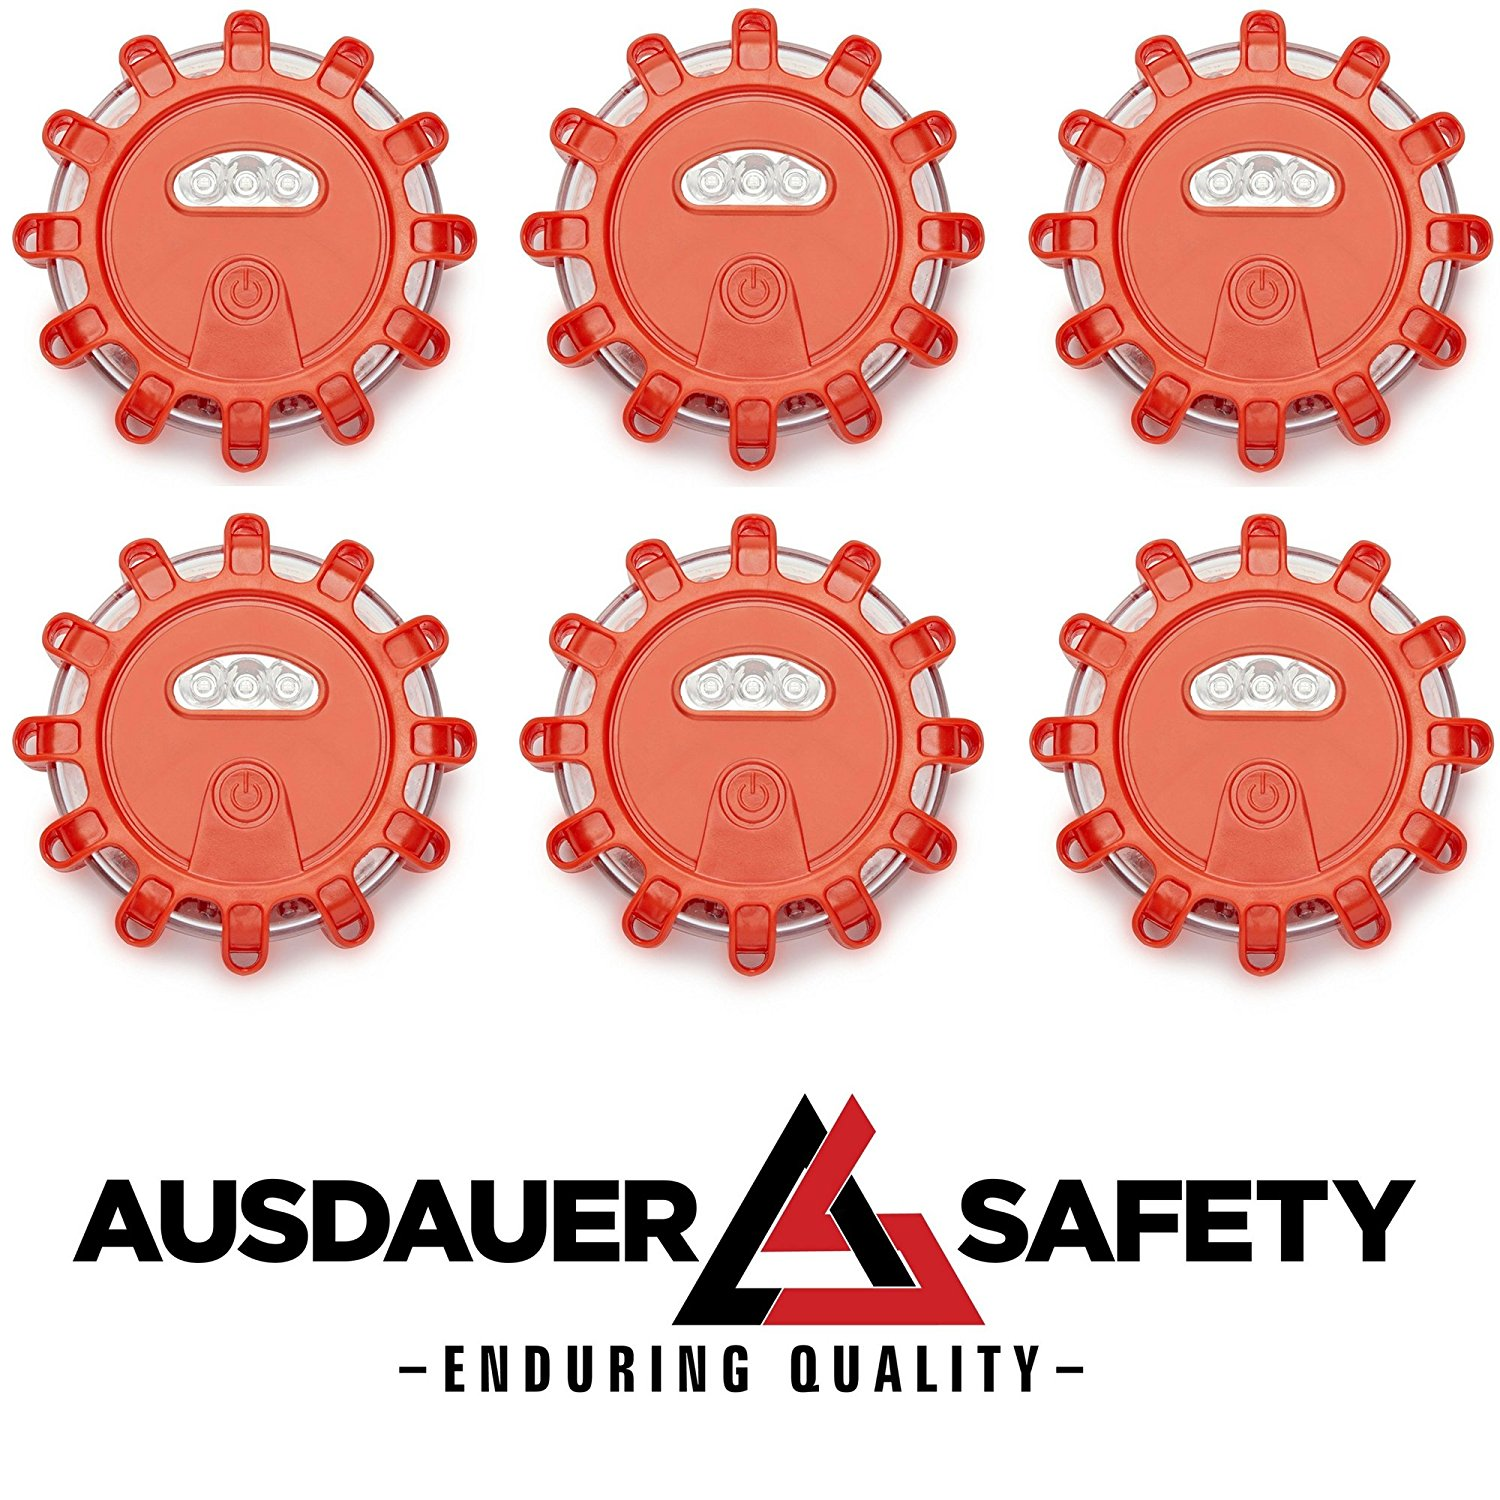 (6 Pack) Red LED Road Flares Emergency Disc Roadside Safety Light Flashing Road Beacon for Auto Car Truck Boat. Ready for 1 OR 2 Vehicles By AUSDAUER SAFETY